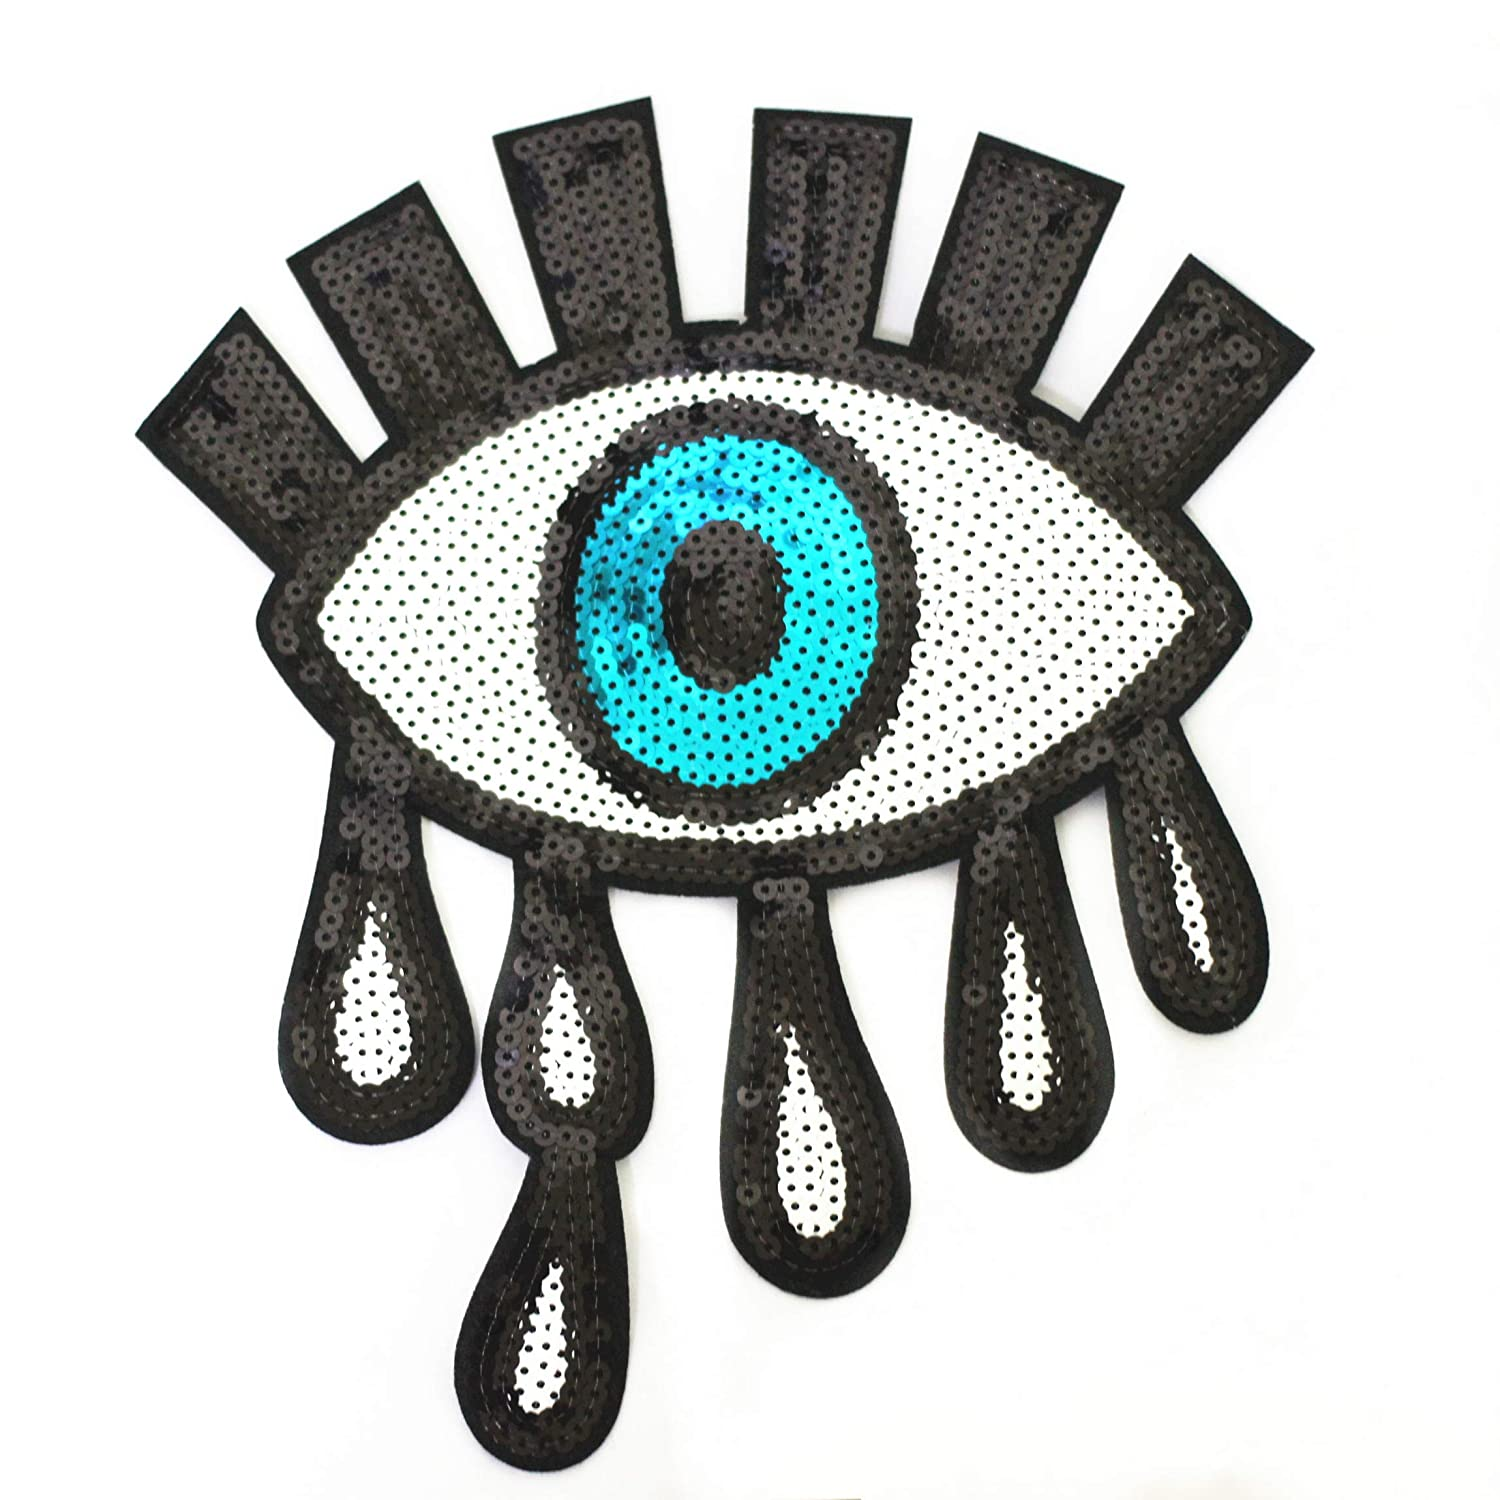 MIAO JIN 10 Pcs Blue Eyes Teardrop Patches Glitter Sequin Embroidered for Garment Accessory /& DIY Motif Embroidered Applique Craft